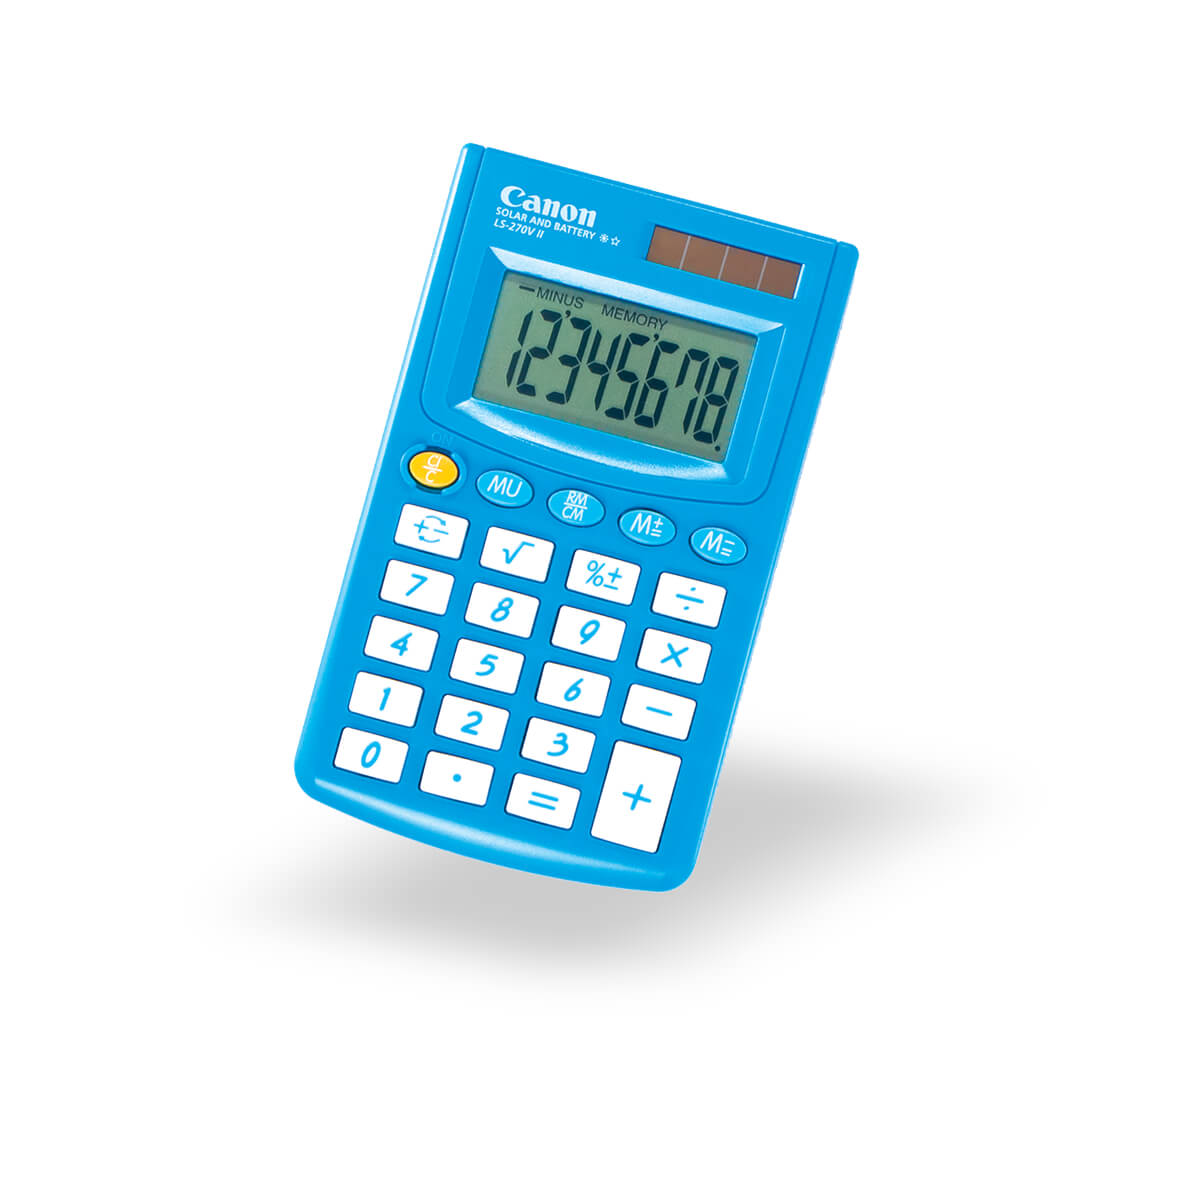 Canon LS-270VII pocket calculator in blue